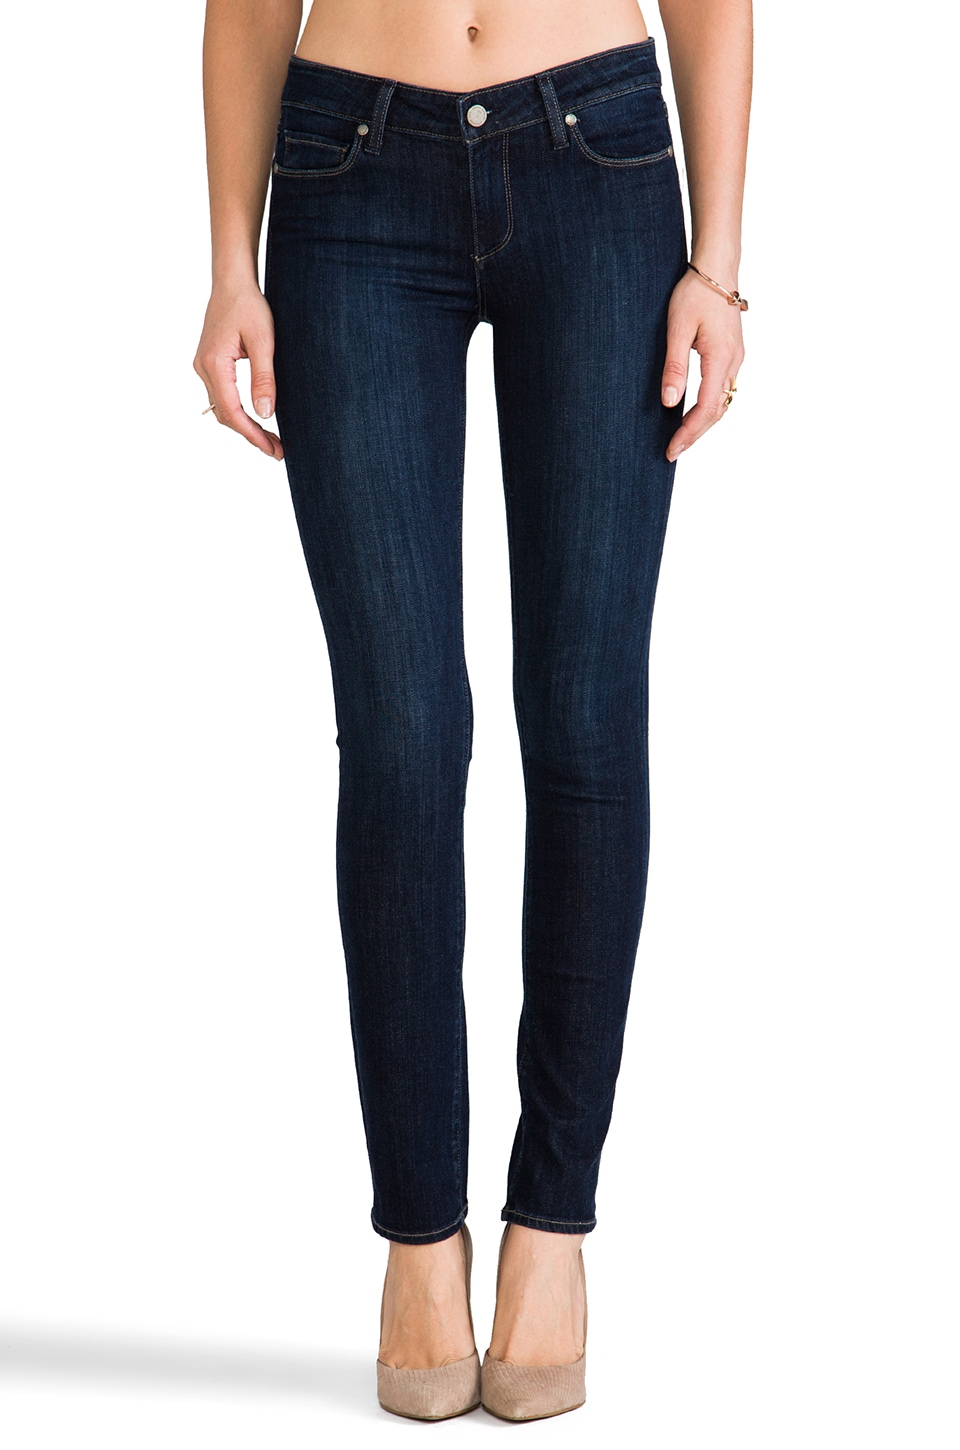 Paige Denim Skyline Skinny in Trinity